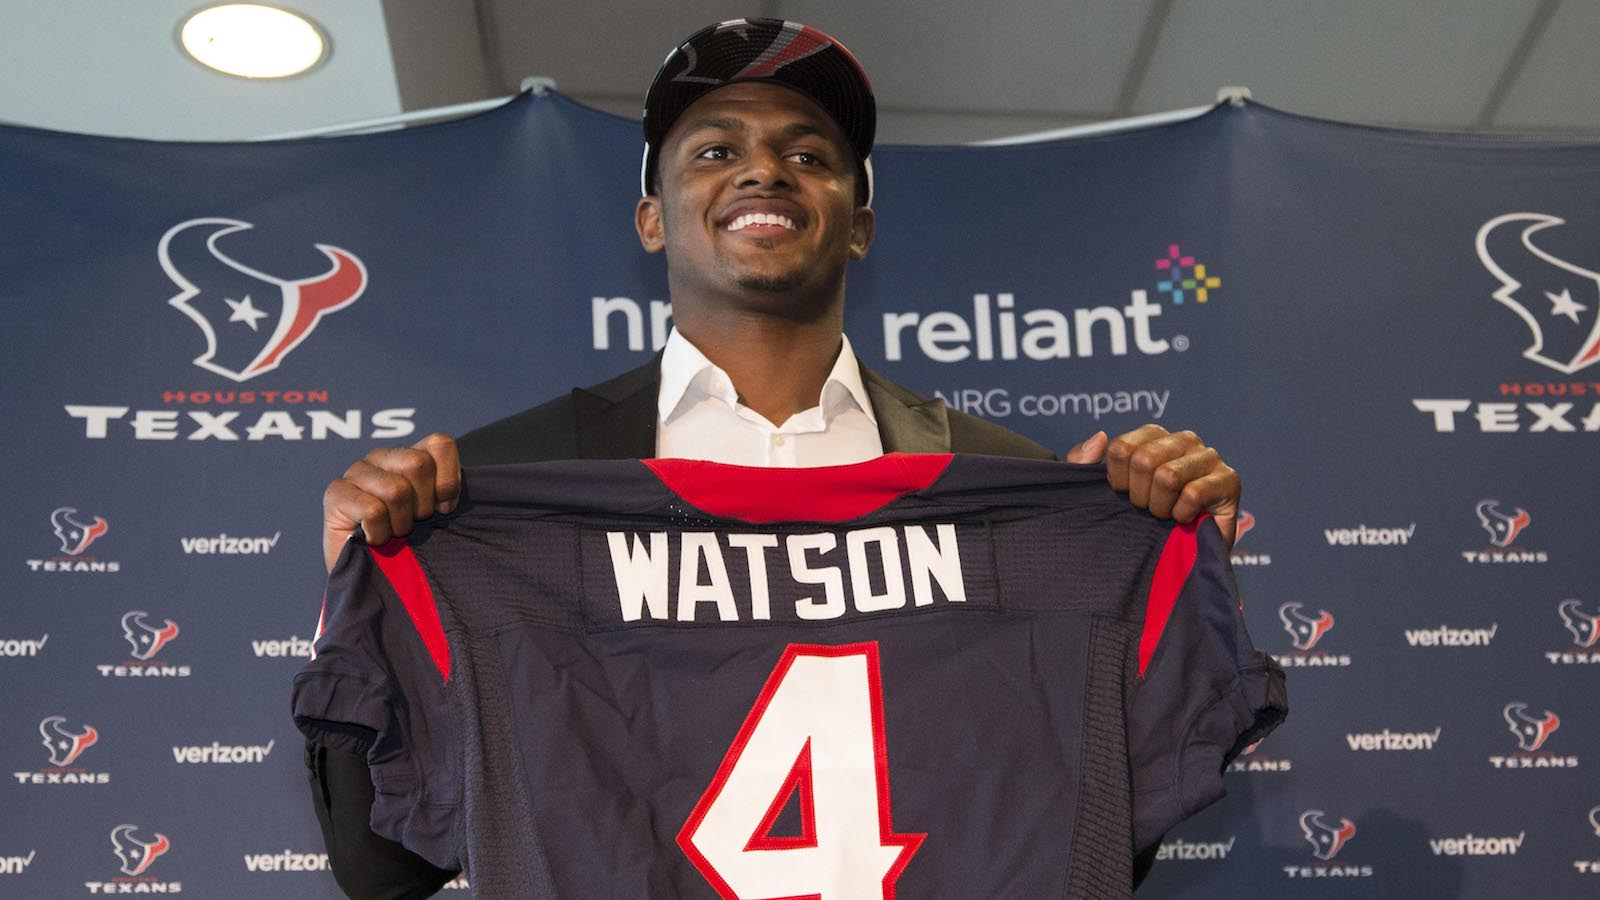 Apr 28, 2017; Houston, TX, USA; Houston Texans first round draft pick Deshaun Watson poses with a jersey during a press conference at NRG Stadium. Mandatory Credit: Troy Taormina-USA TODAY Sports